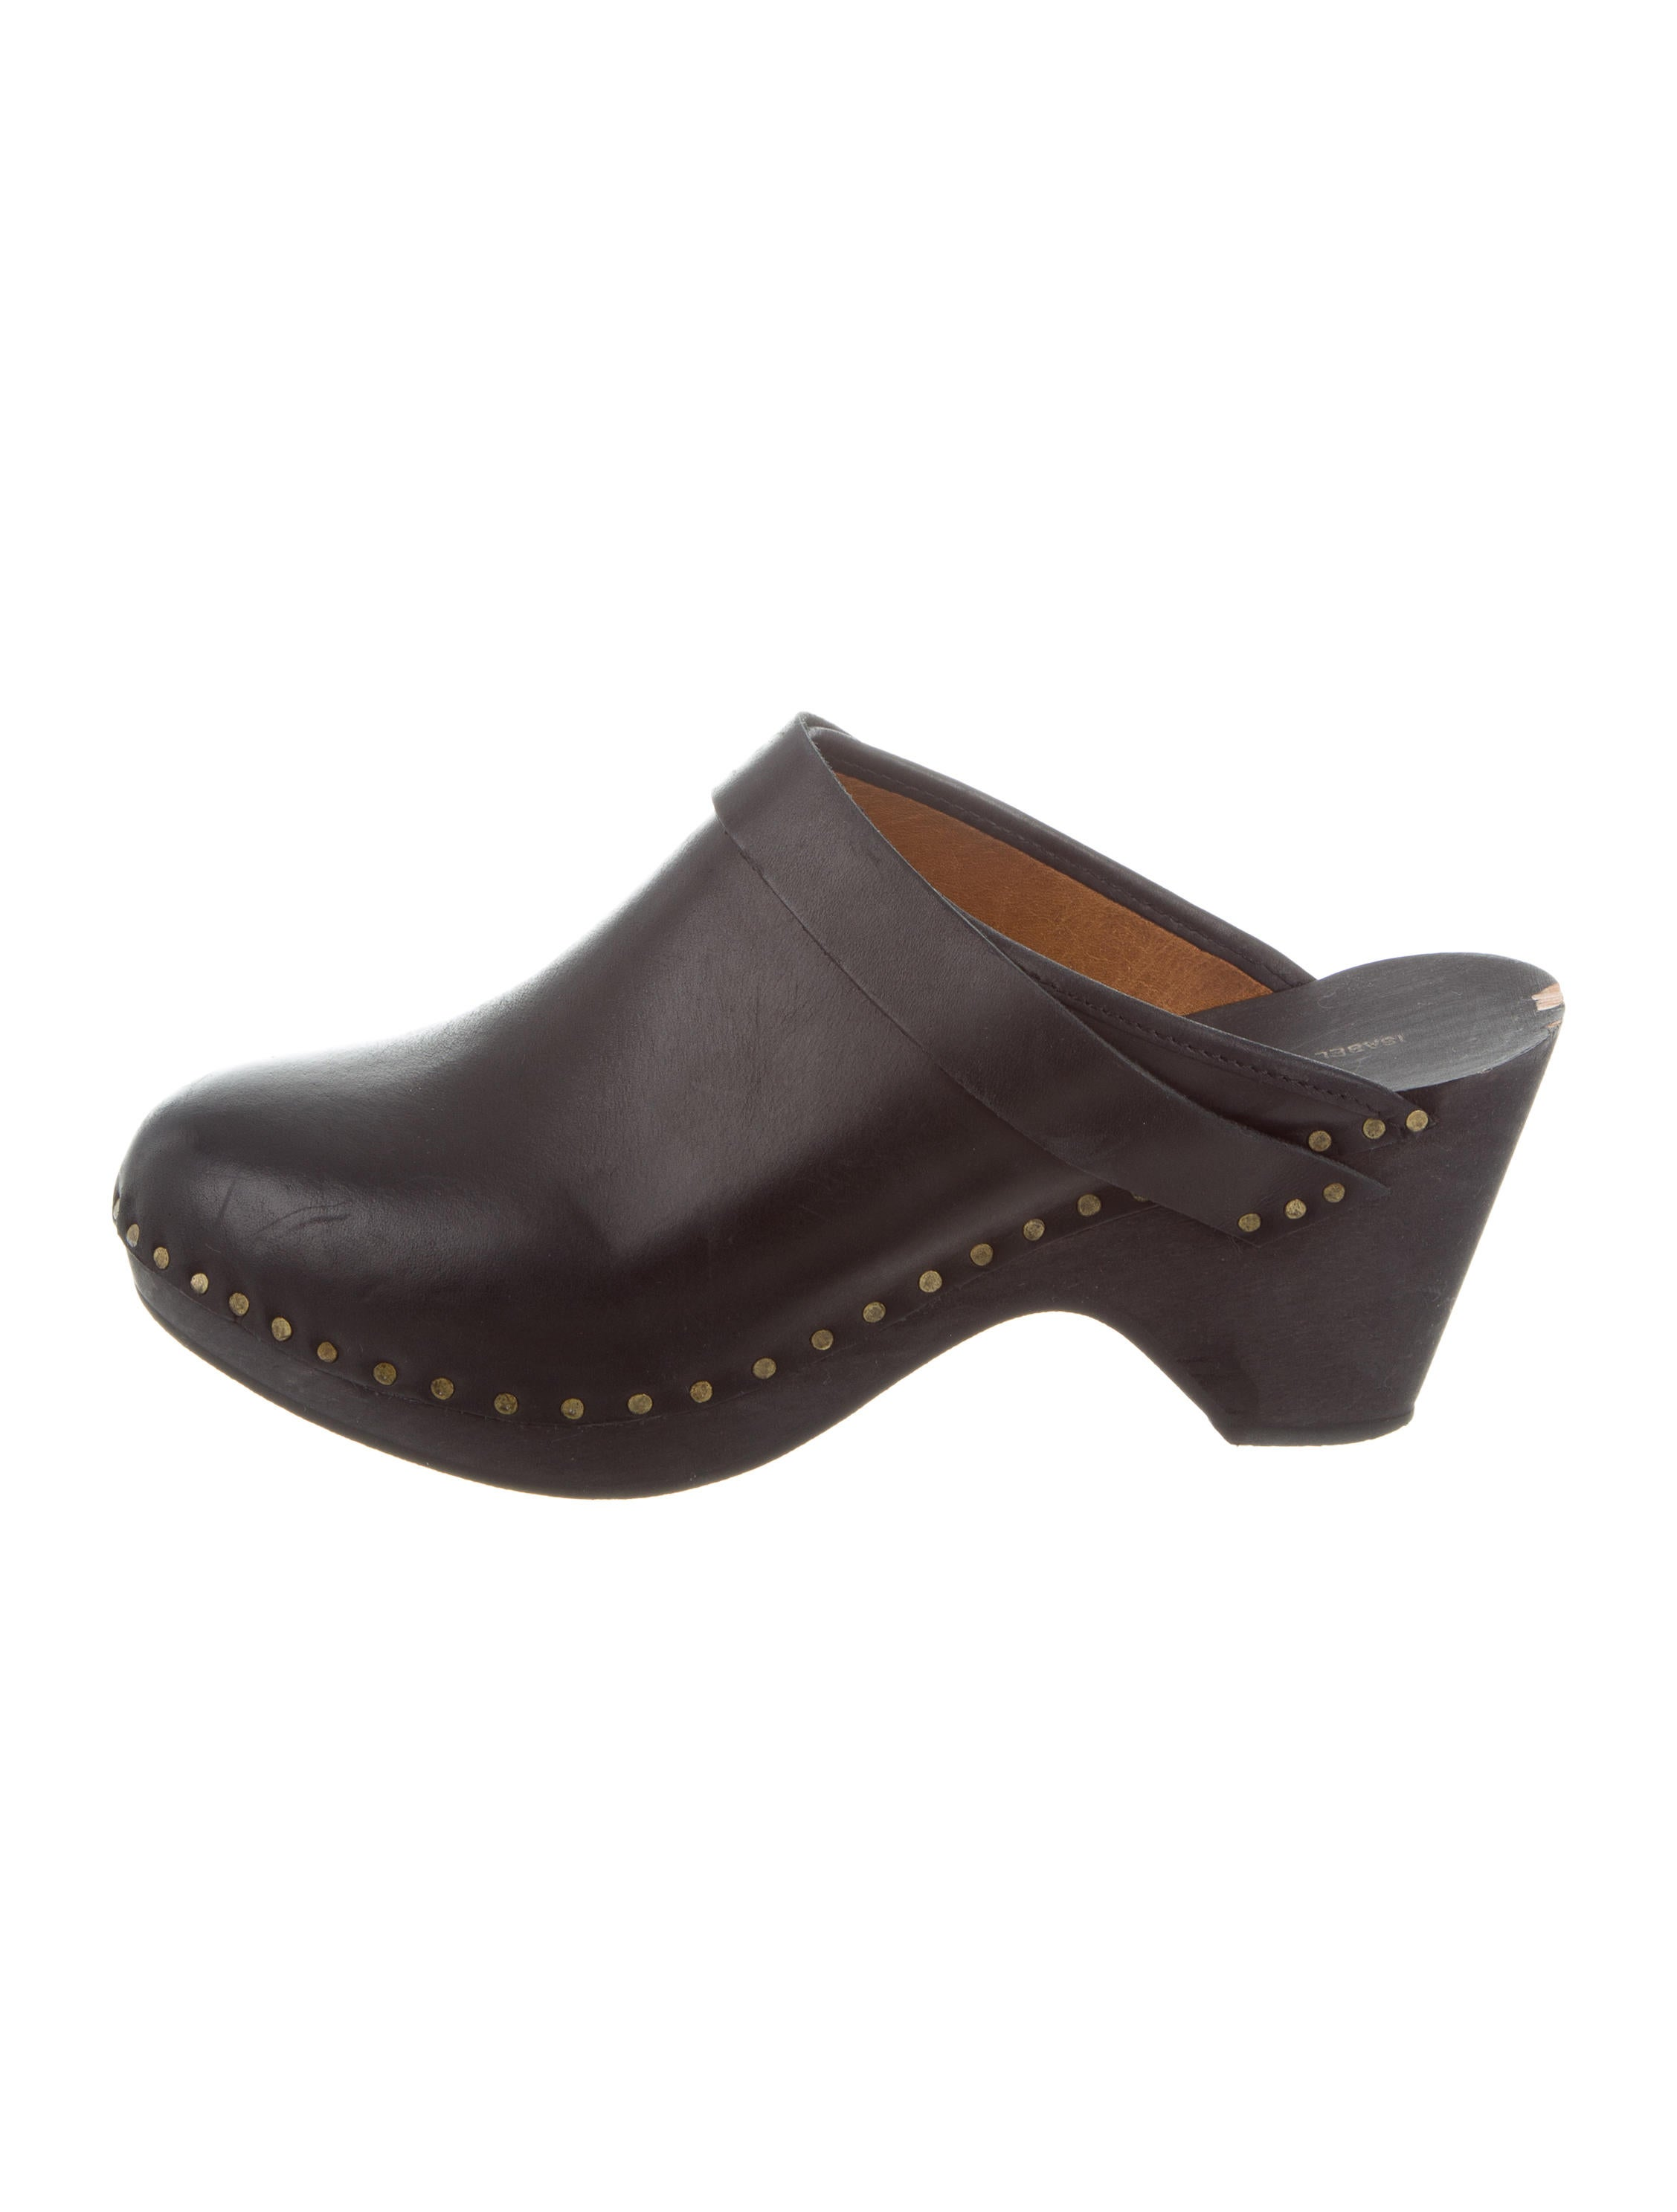 very cheap cheap online sale 2015 new Isabel Marant Leather Round-Toe Clogs professional cheap price free shipping cheapest price outlet original 3y37kZ5